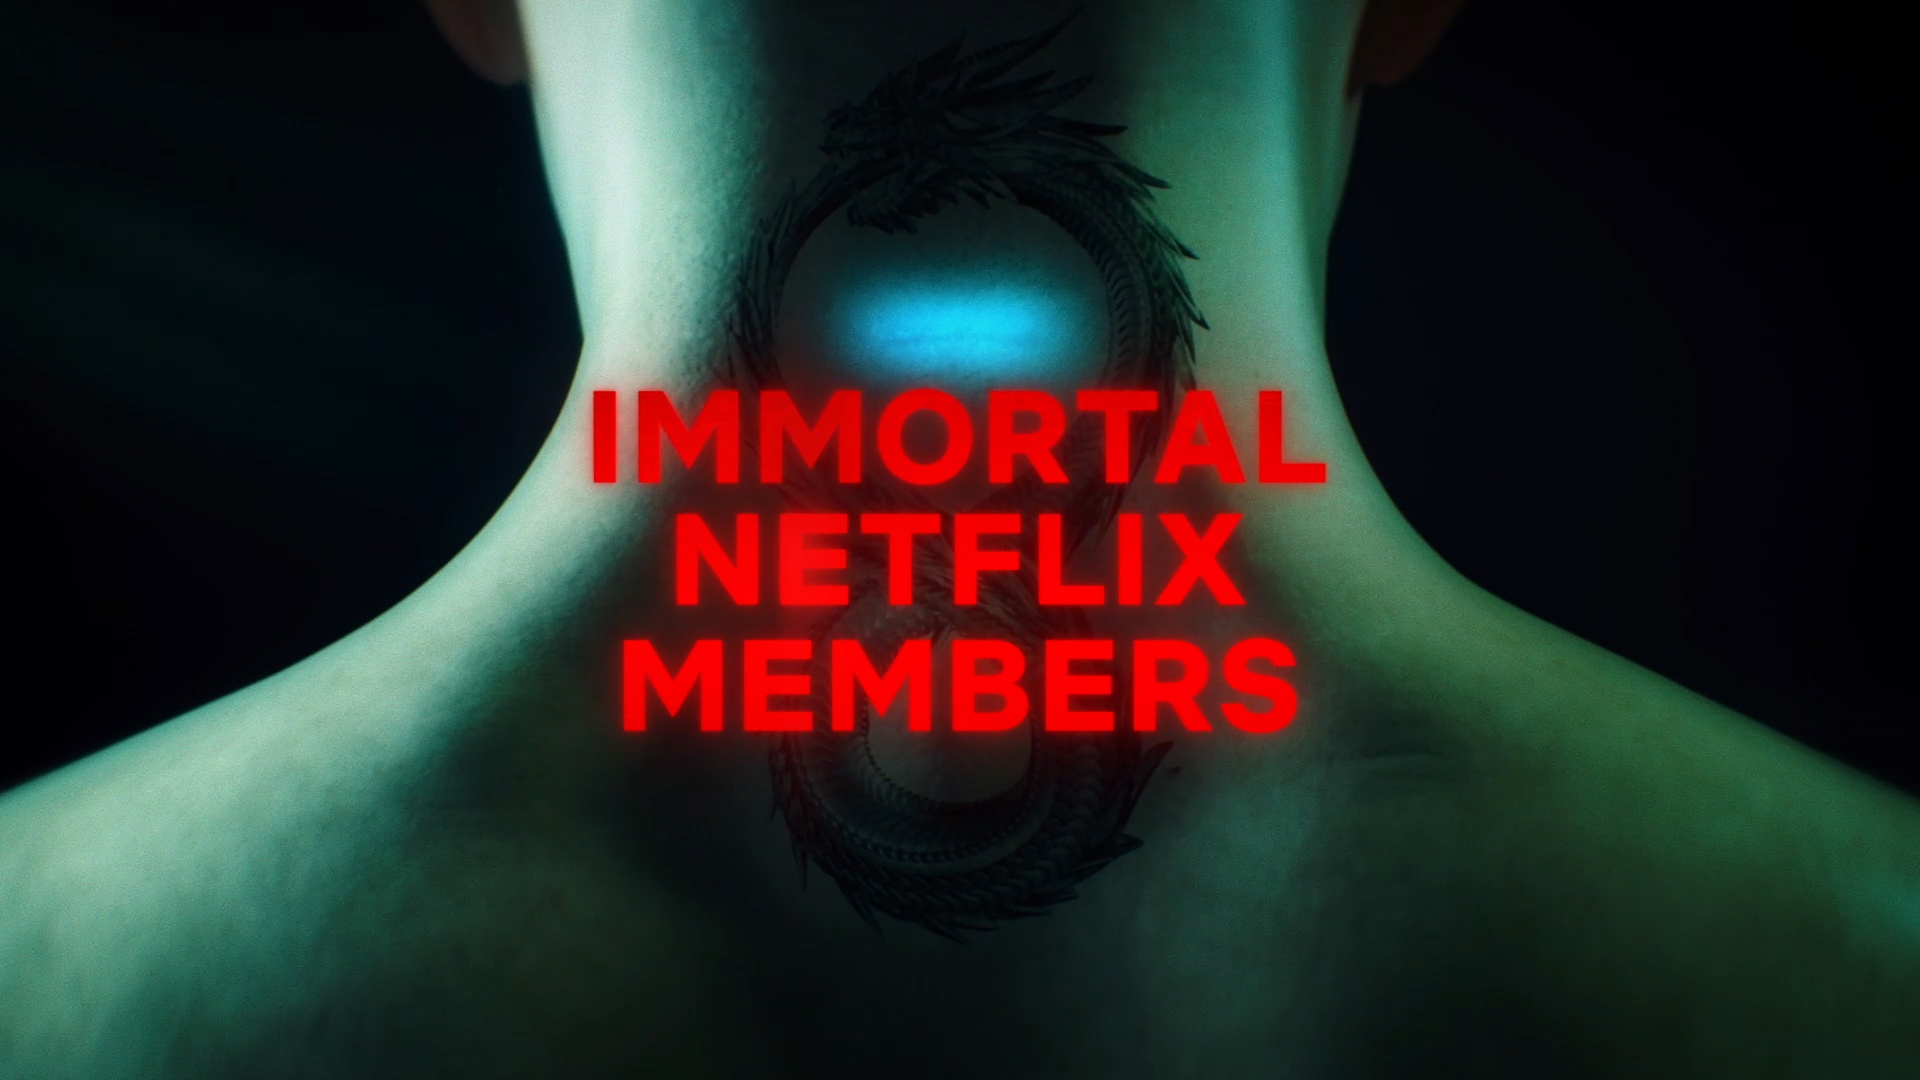 Netflix Immortal Membership